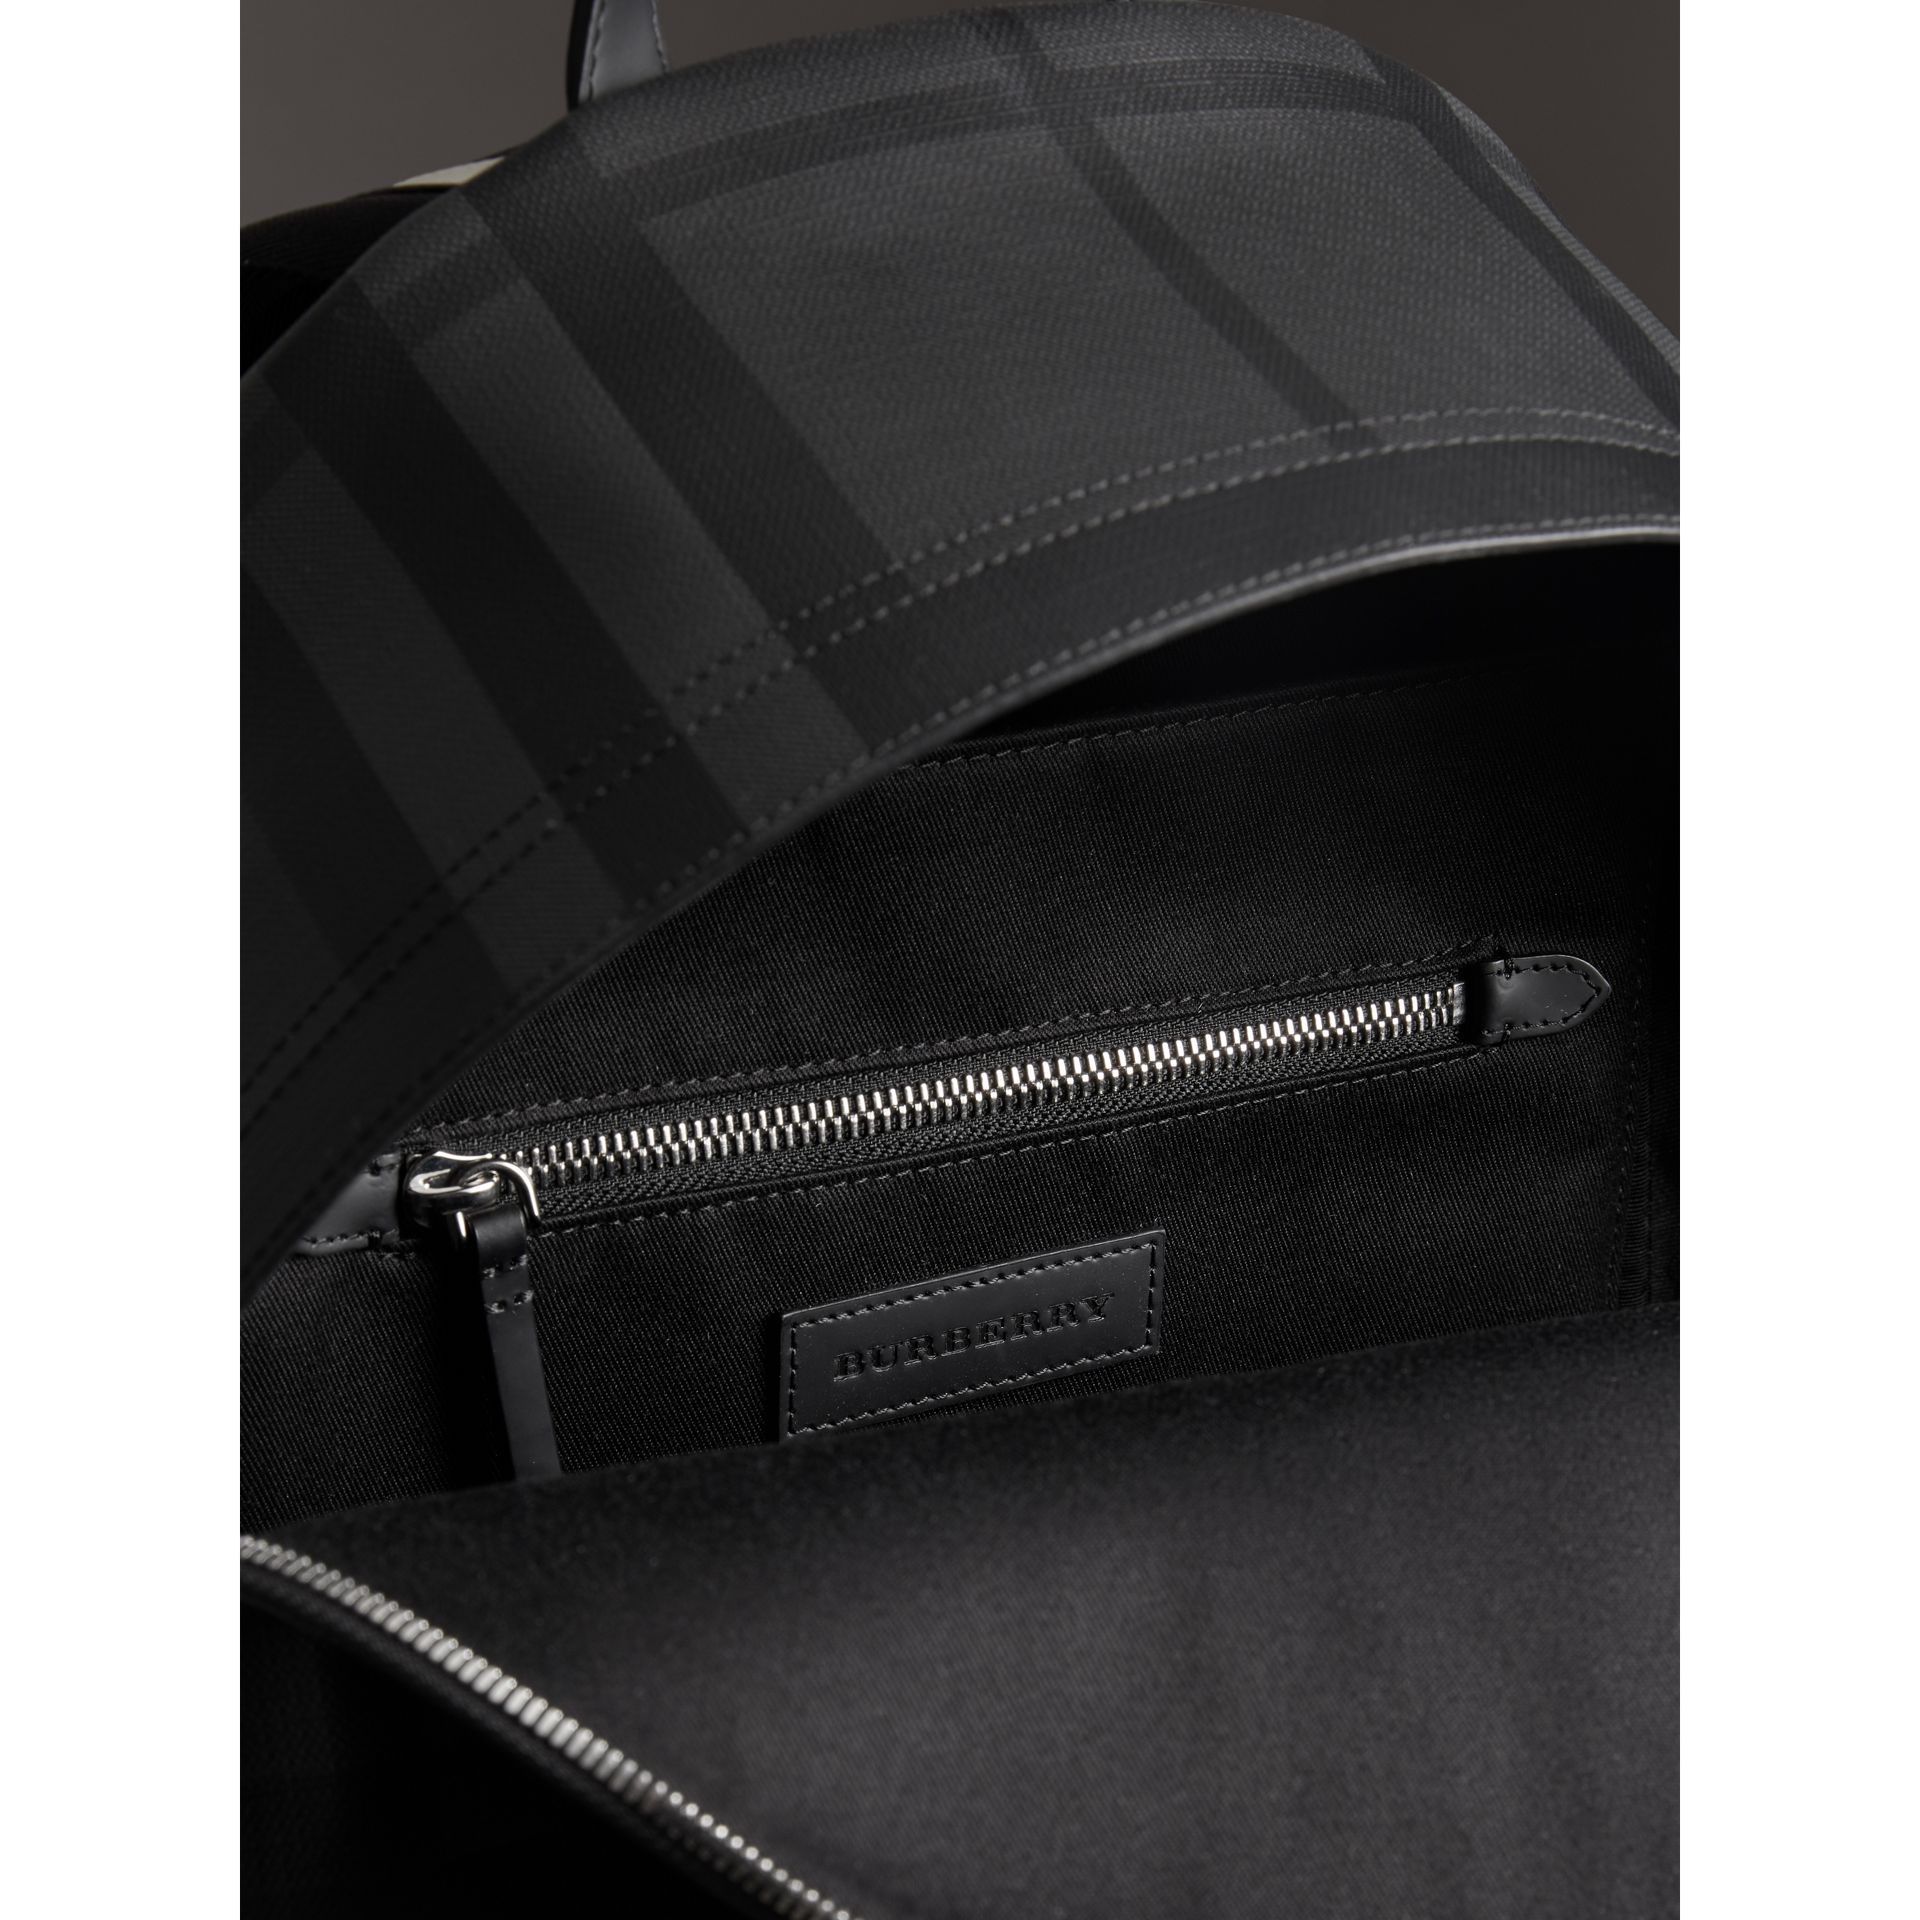 Logo Print London Check Backpack in Charcoal - Men | Burberry United Kingdom - gallery image 5